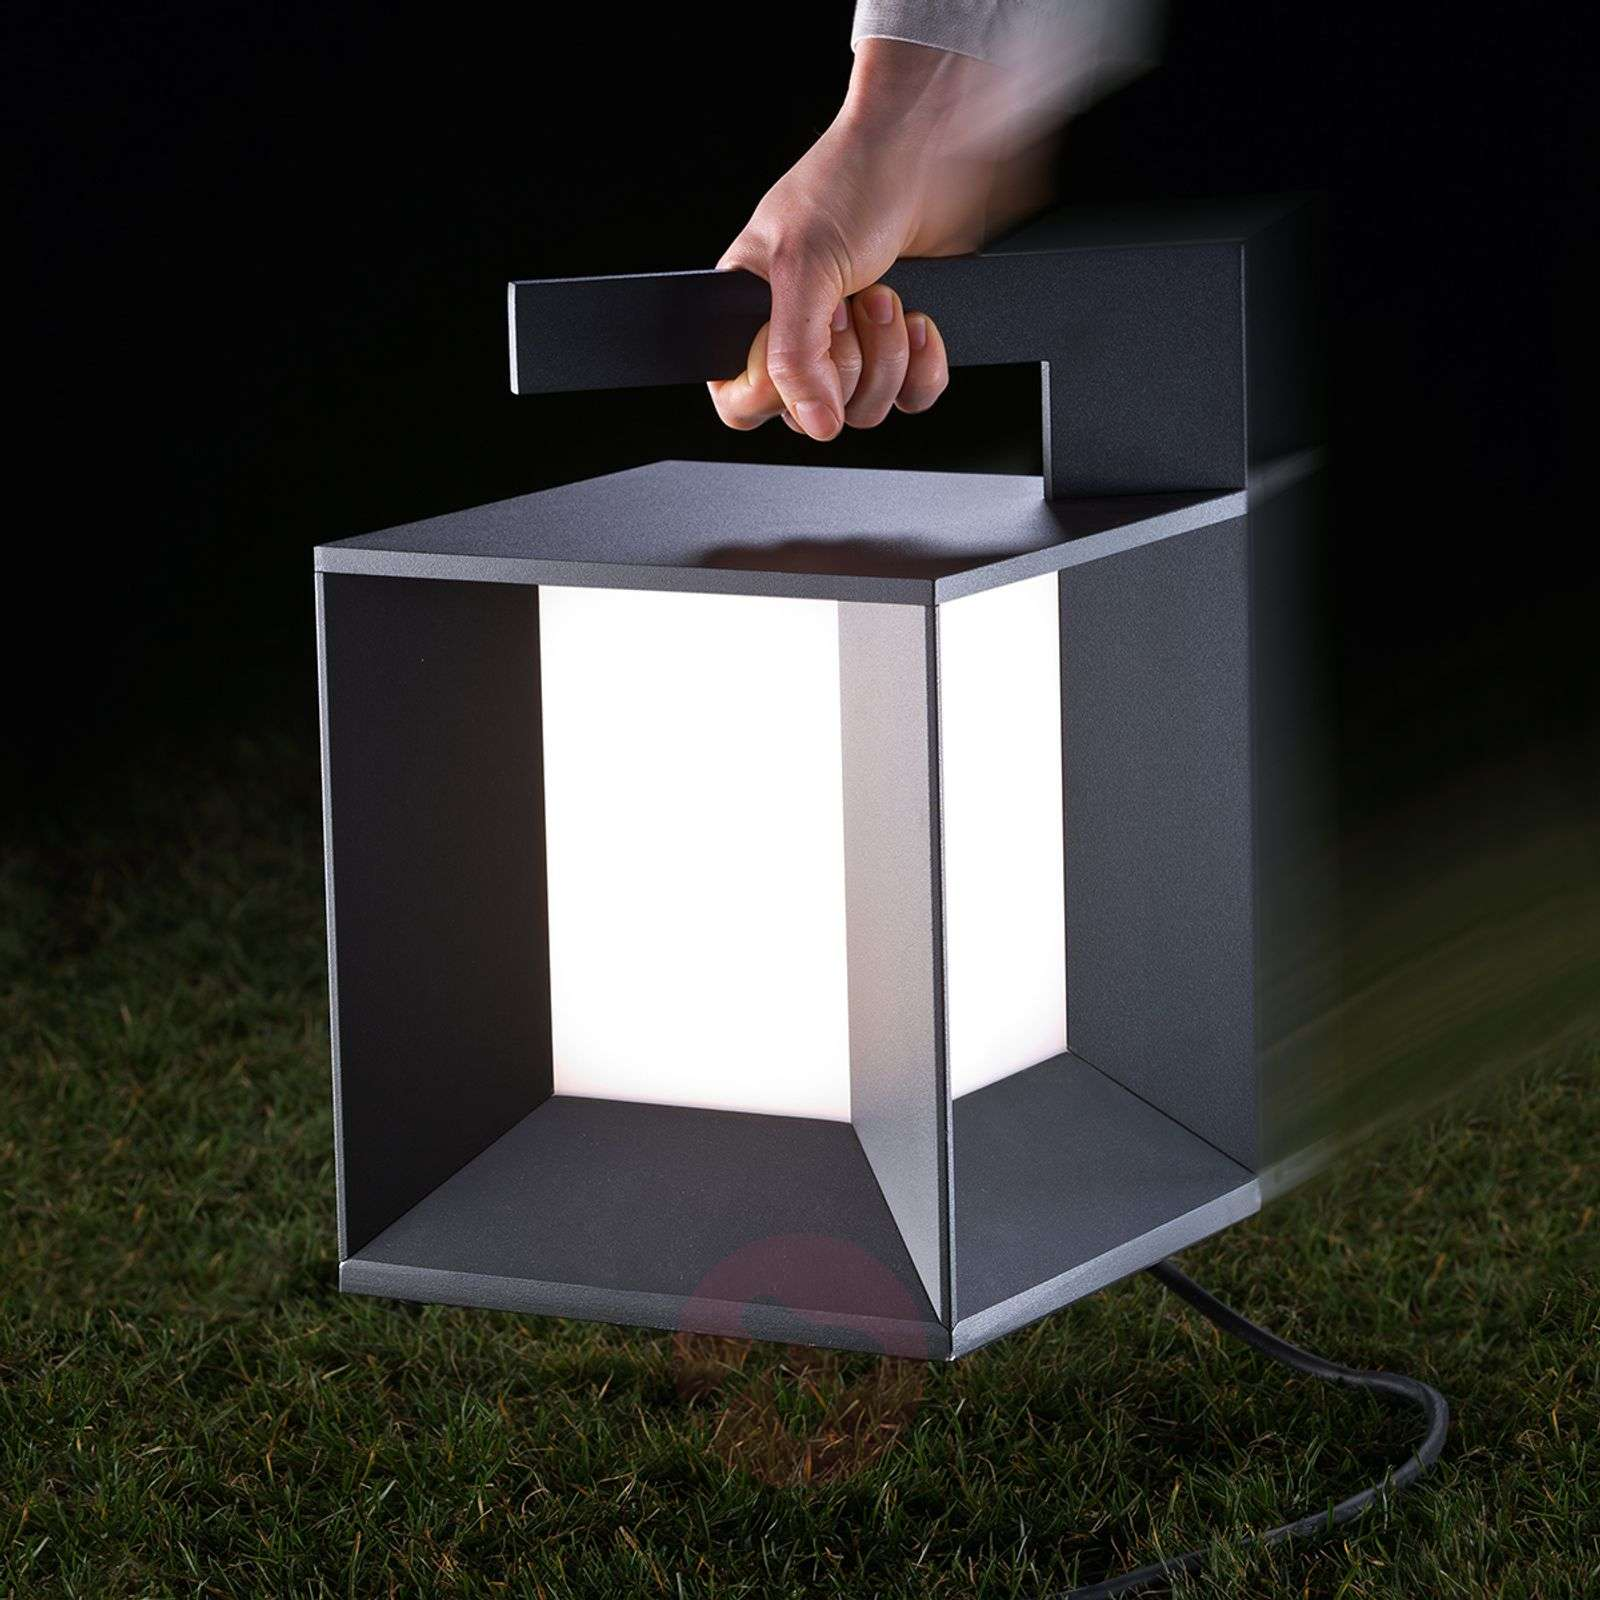 Portable modern Mineur LED table lamp for outdoors-4529198-01